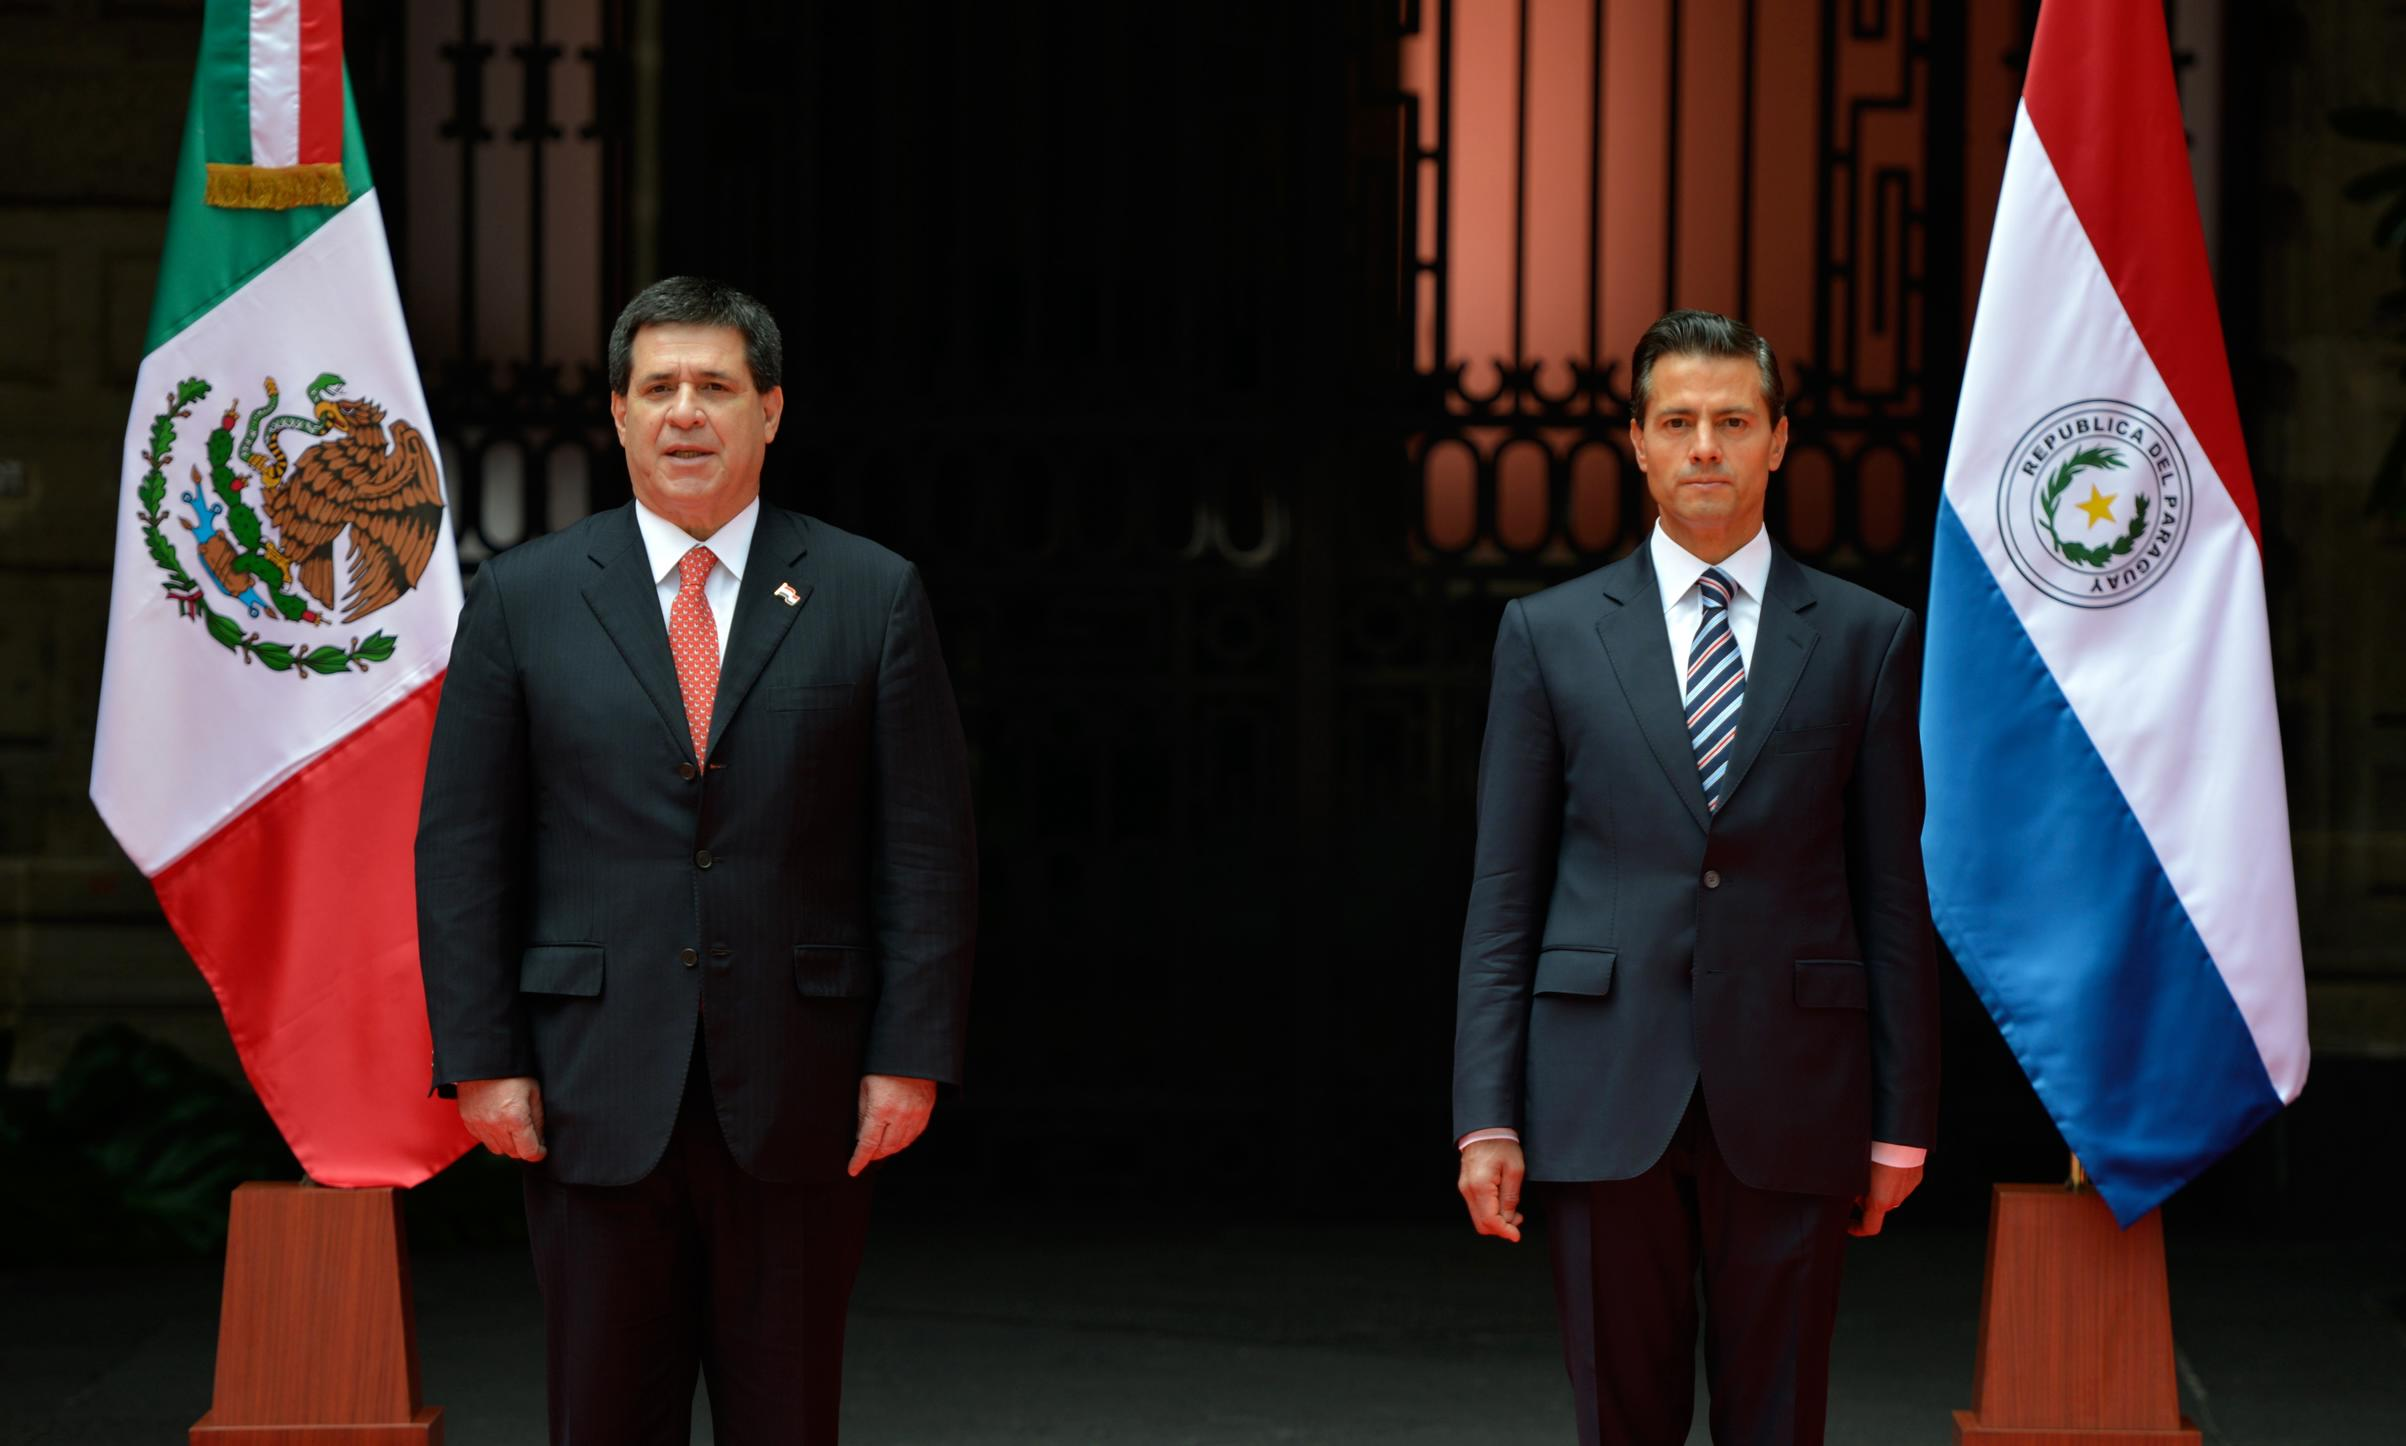 Official visit to Mexico by the President of Paraguay, Horacio Cartes Jara